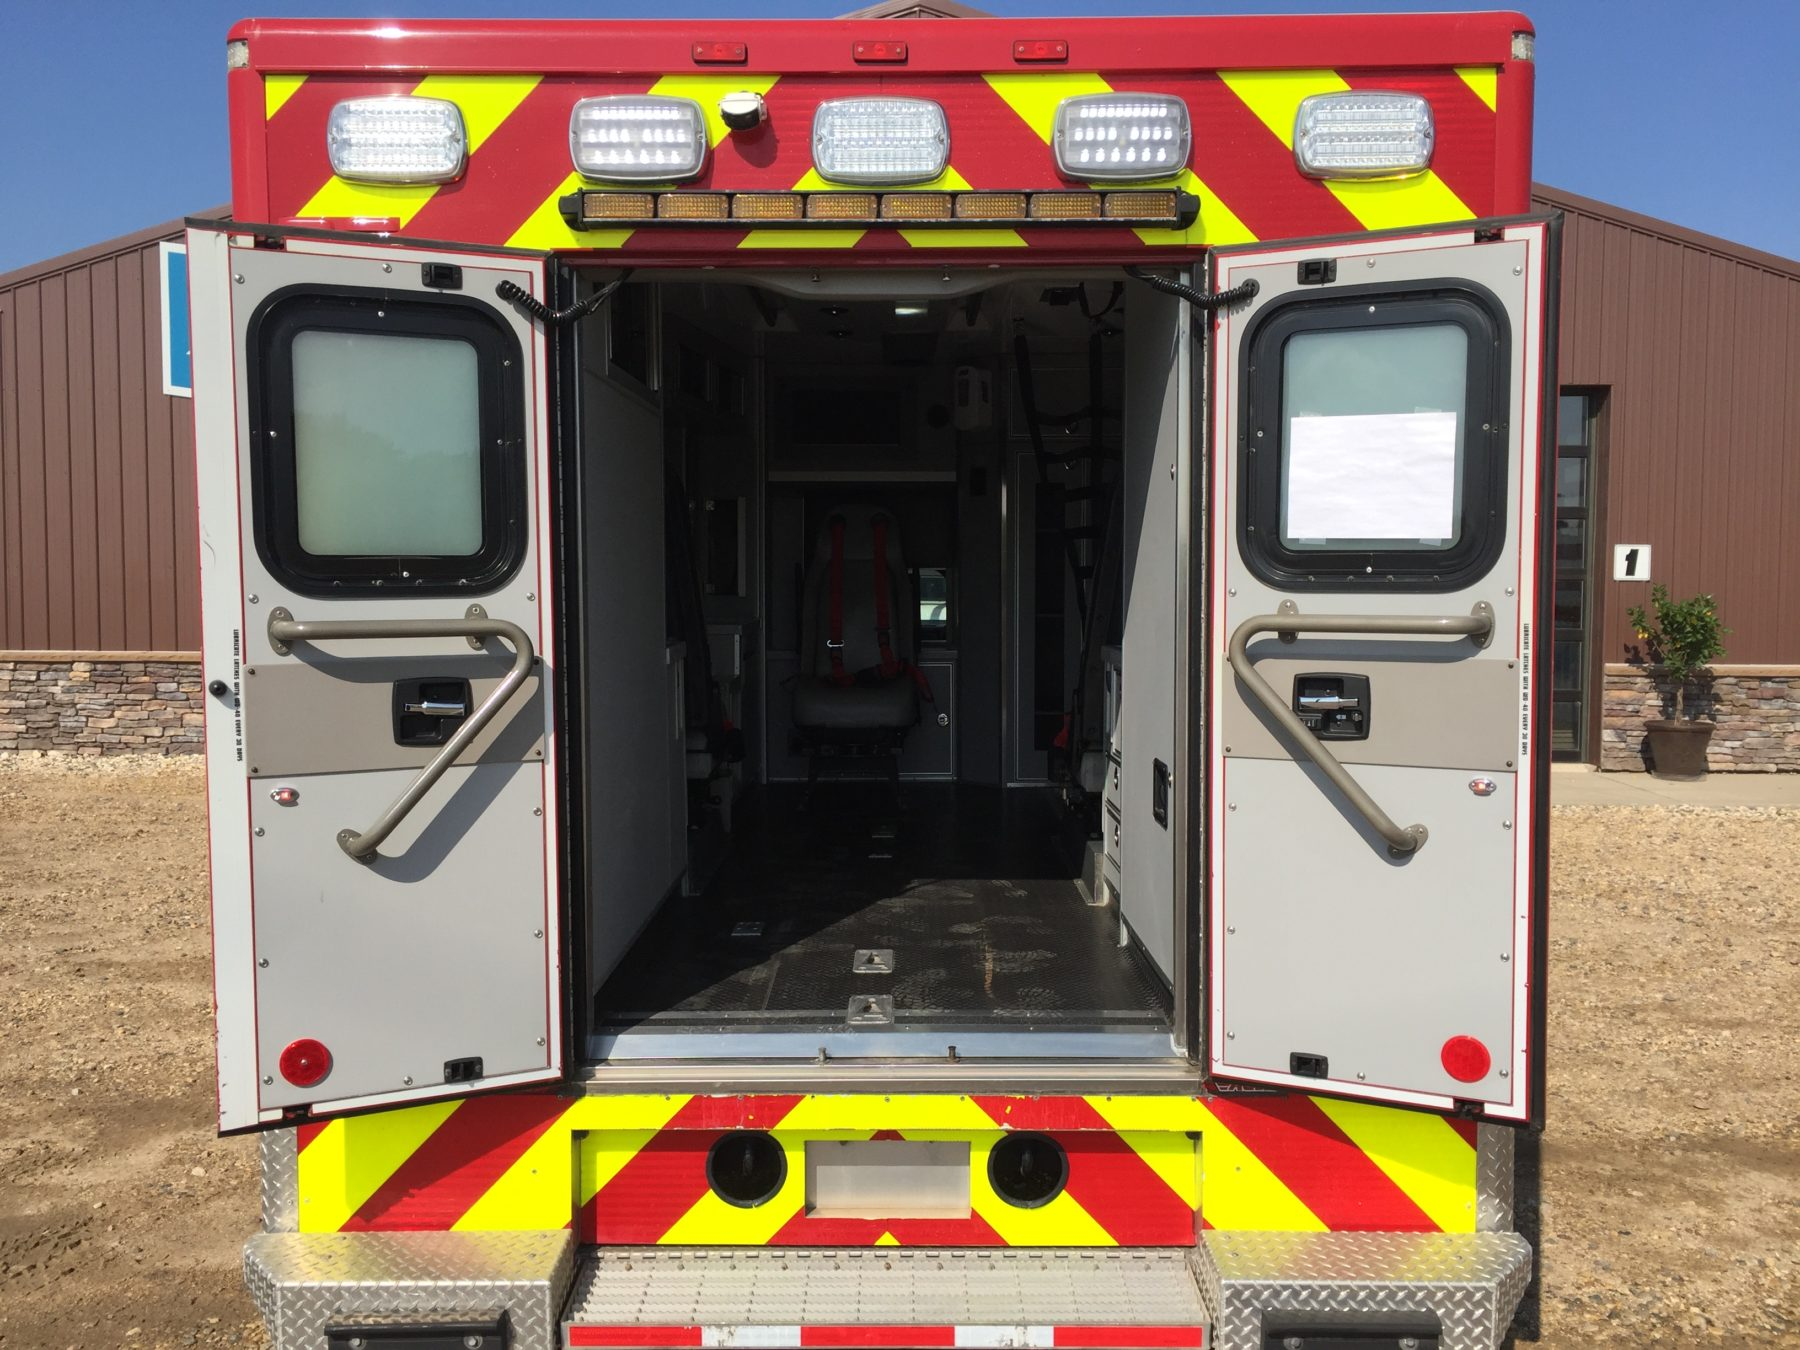 2012 Ford F550 4x4 Heavy Duty Ambulance For Sale – Picture 9